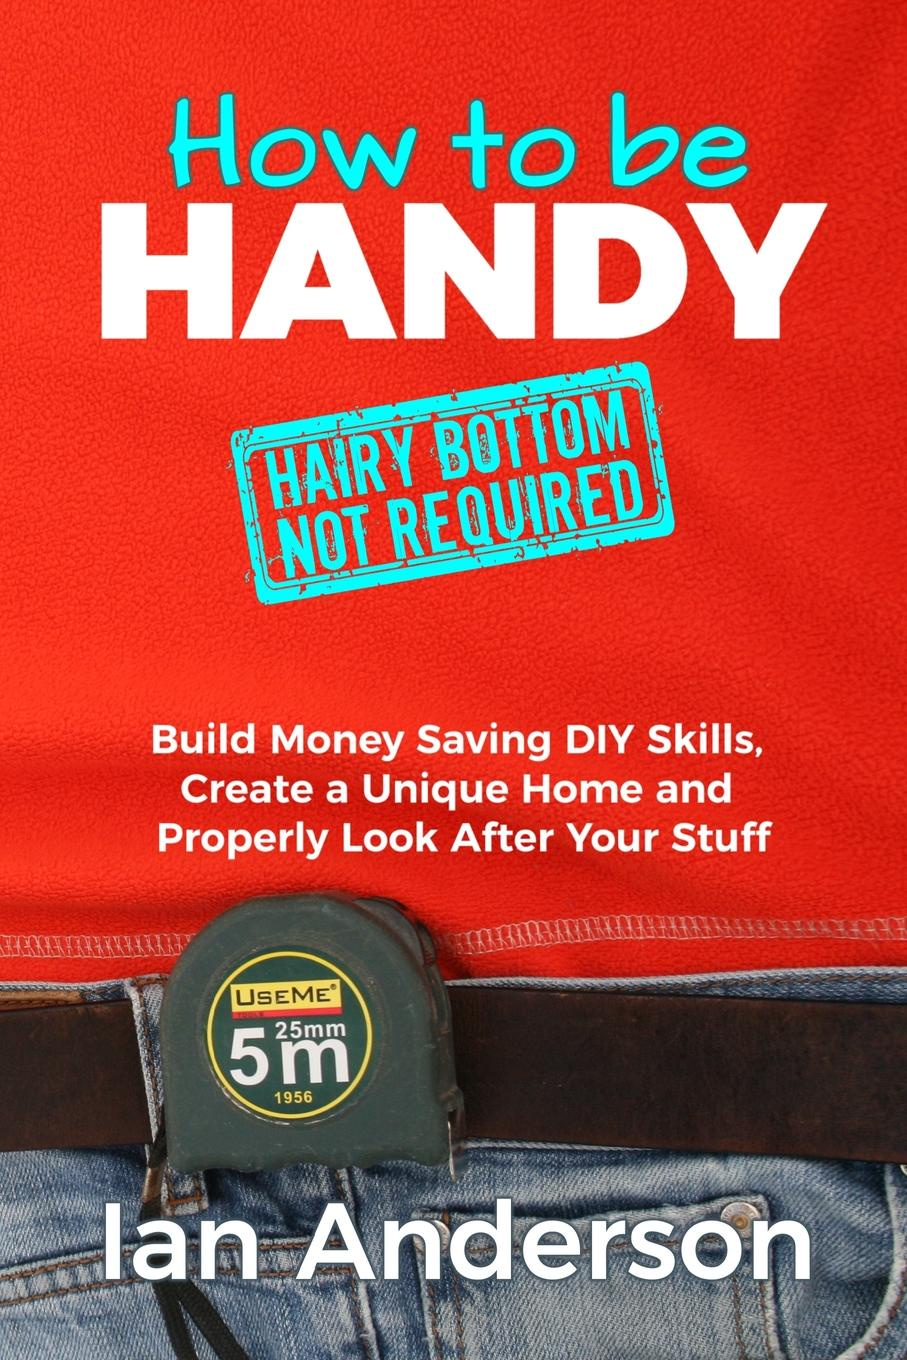 Ian Anderson. How to be Handy .hairy bottom not required.. Build Money Saving DIY Skills, Create a Unique Home and Properly Look After Your Stuff